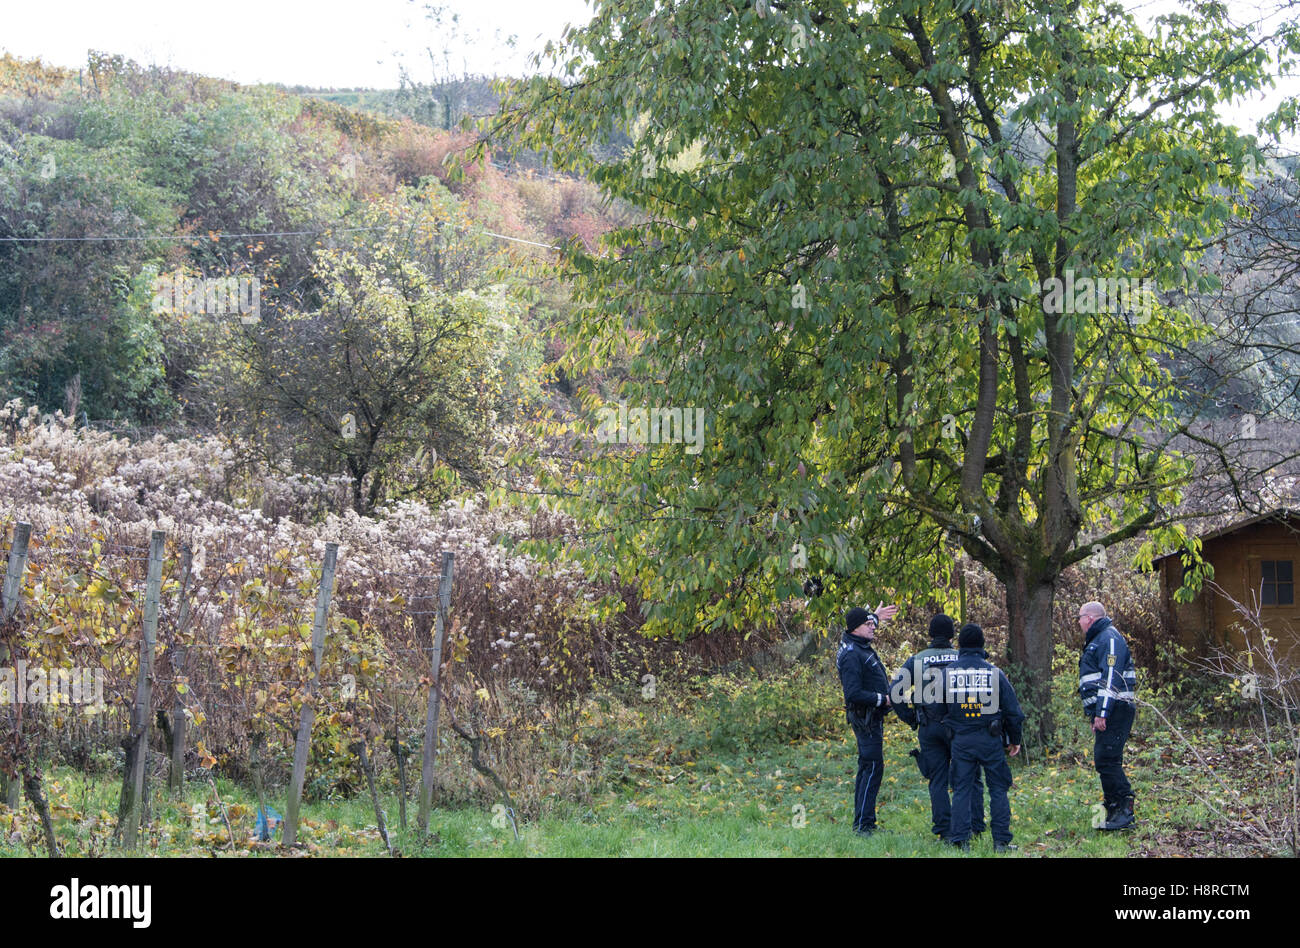 Police are looking for a missing 27-year-old female jogger at a vineyard in Endingen, Germany, 08 November 2016. - Stock Image